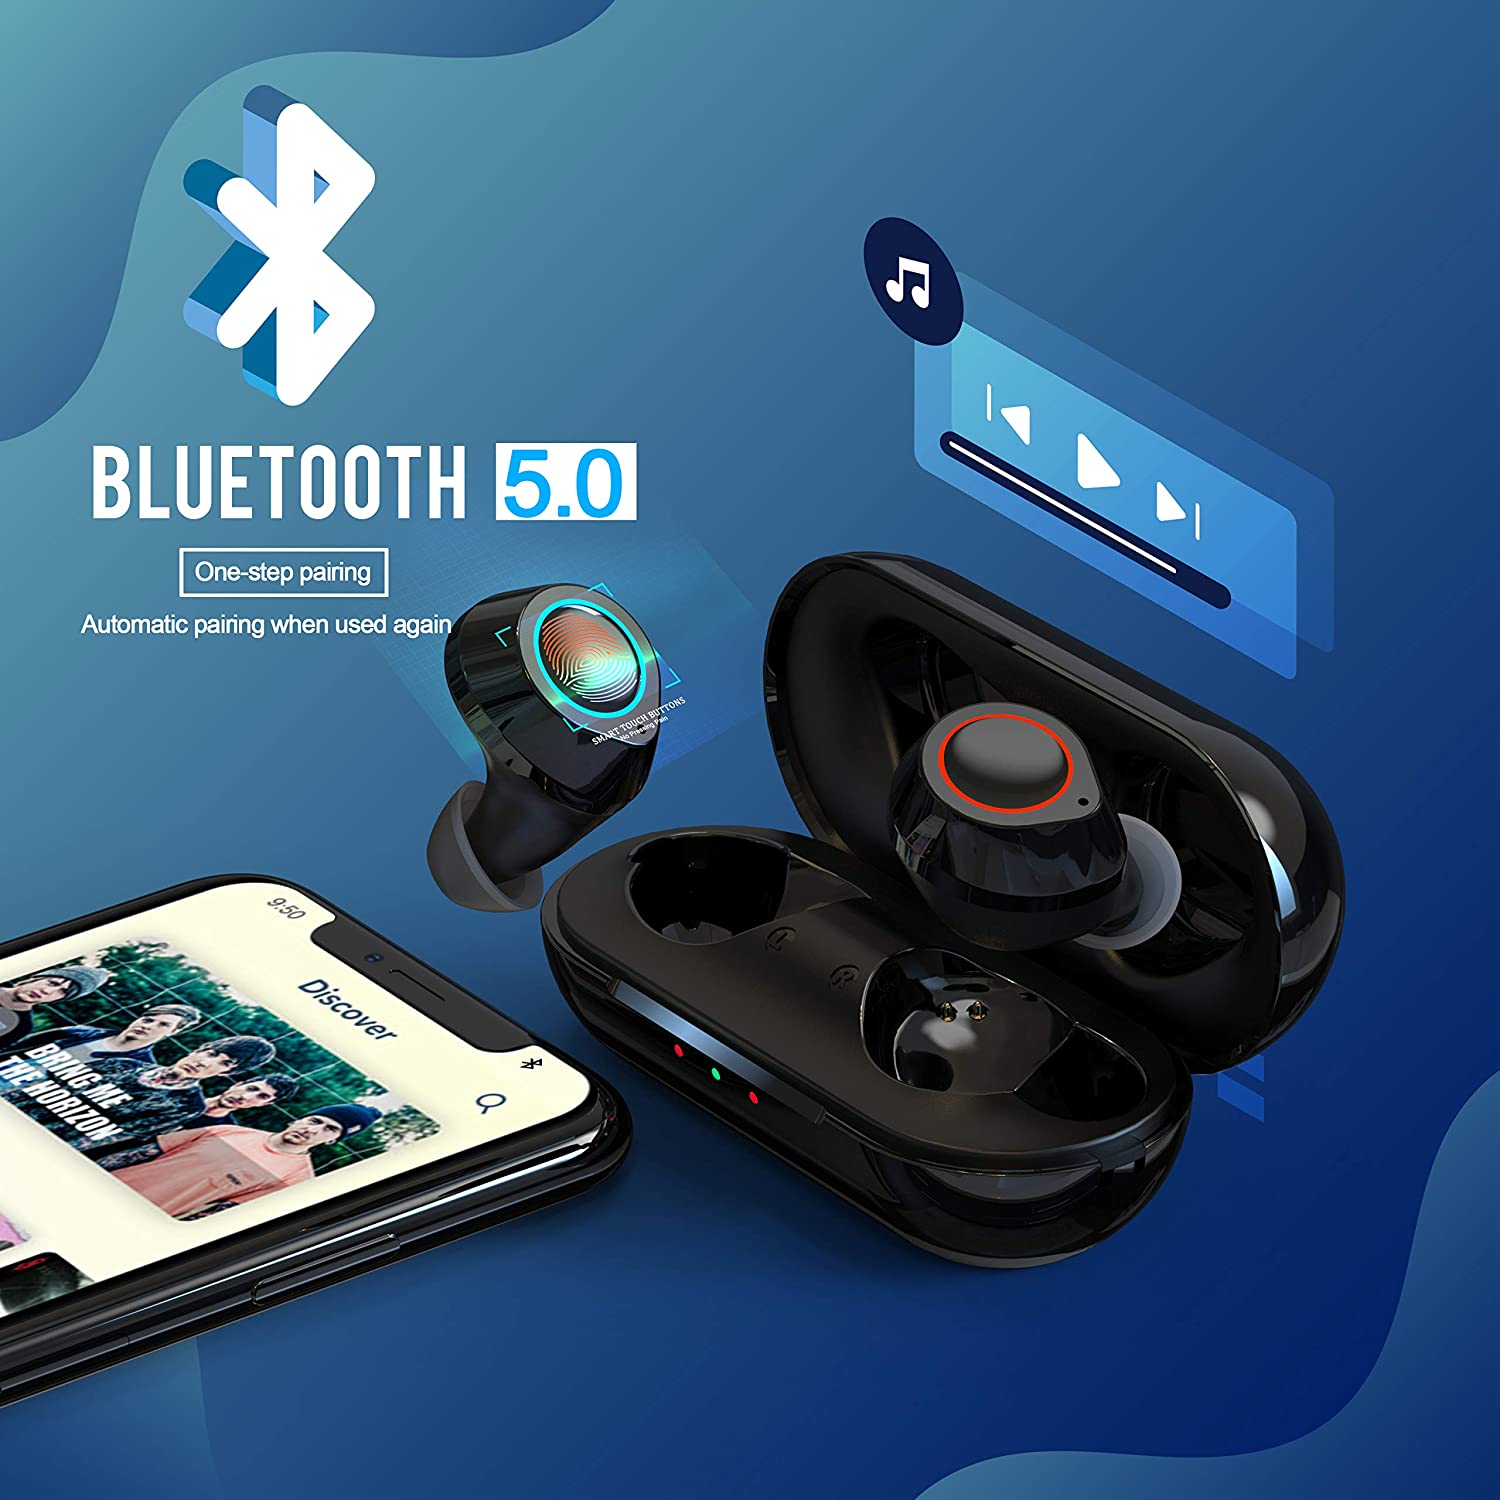 Wireless Bluetooth Earbuds JECOO T2S True Stereo Headphones in-Ear Buds Built-in Mic Headsets IPX5 Waterproof Premium Sound Earphones with Charging Case